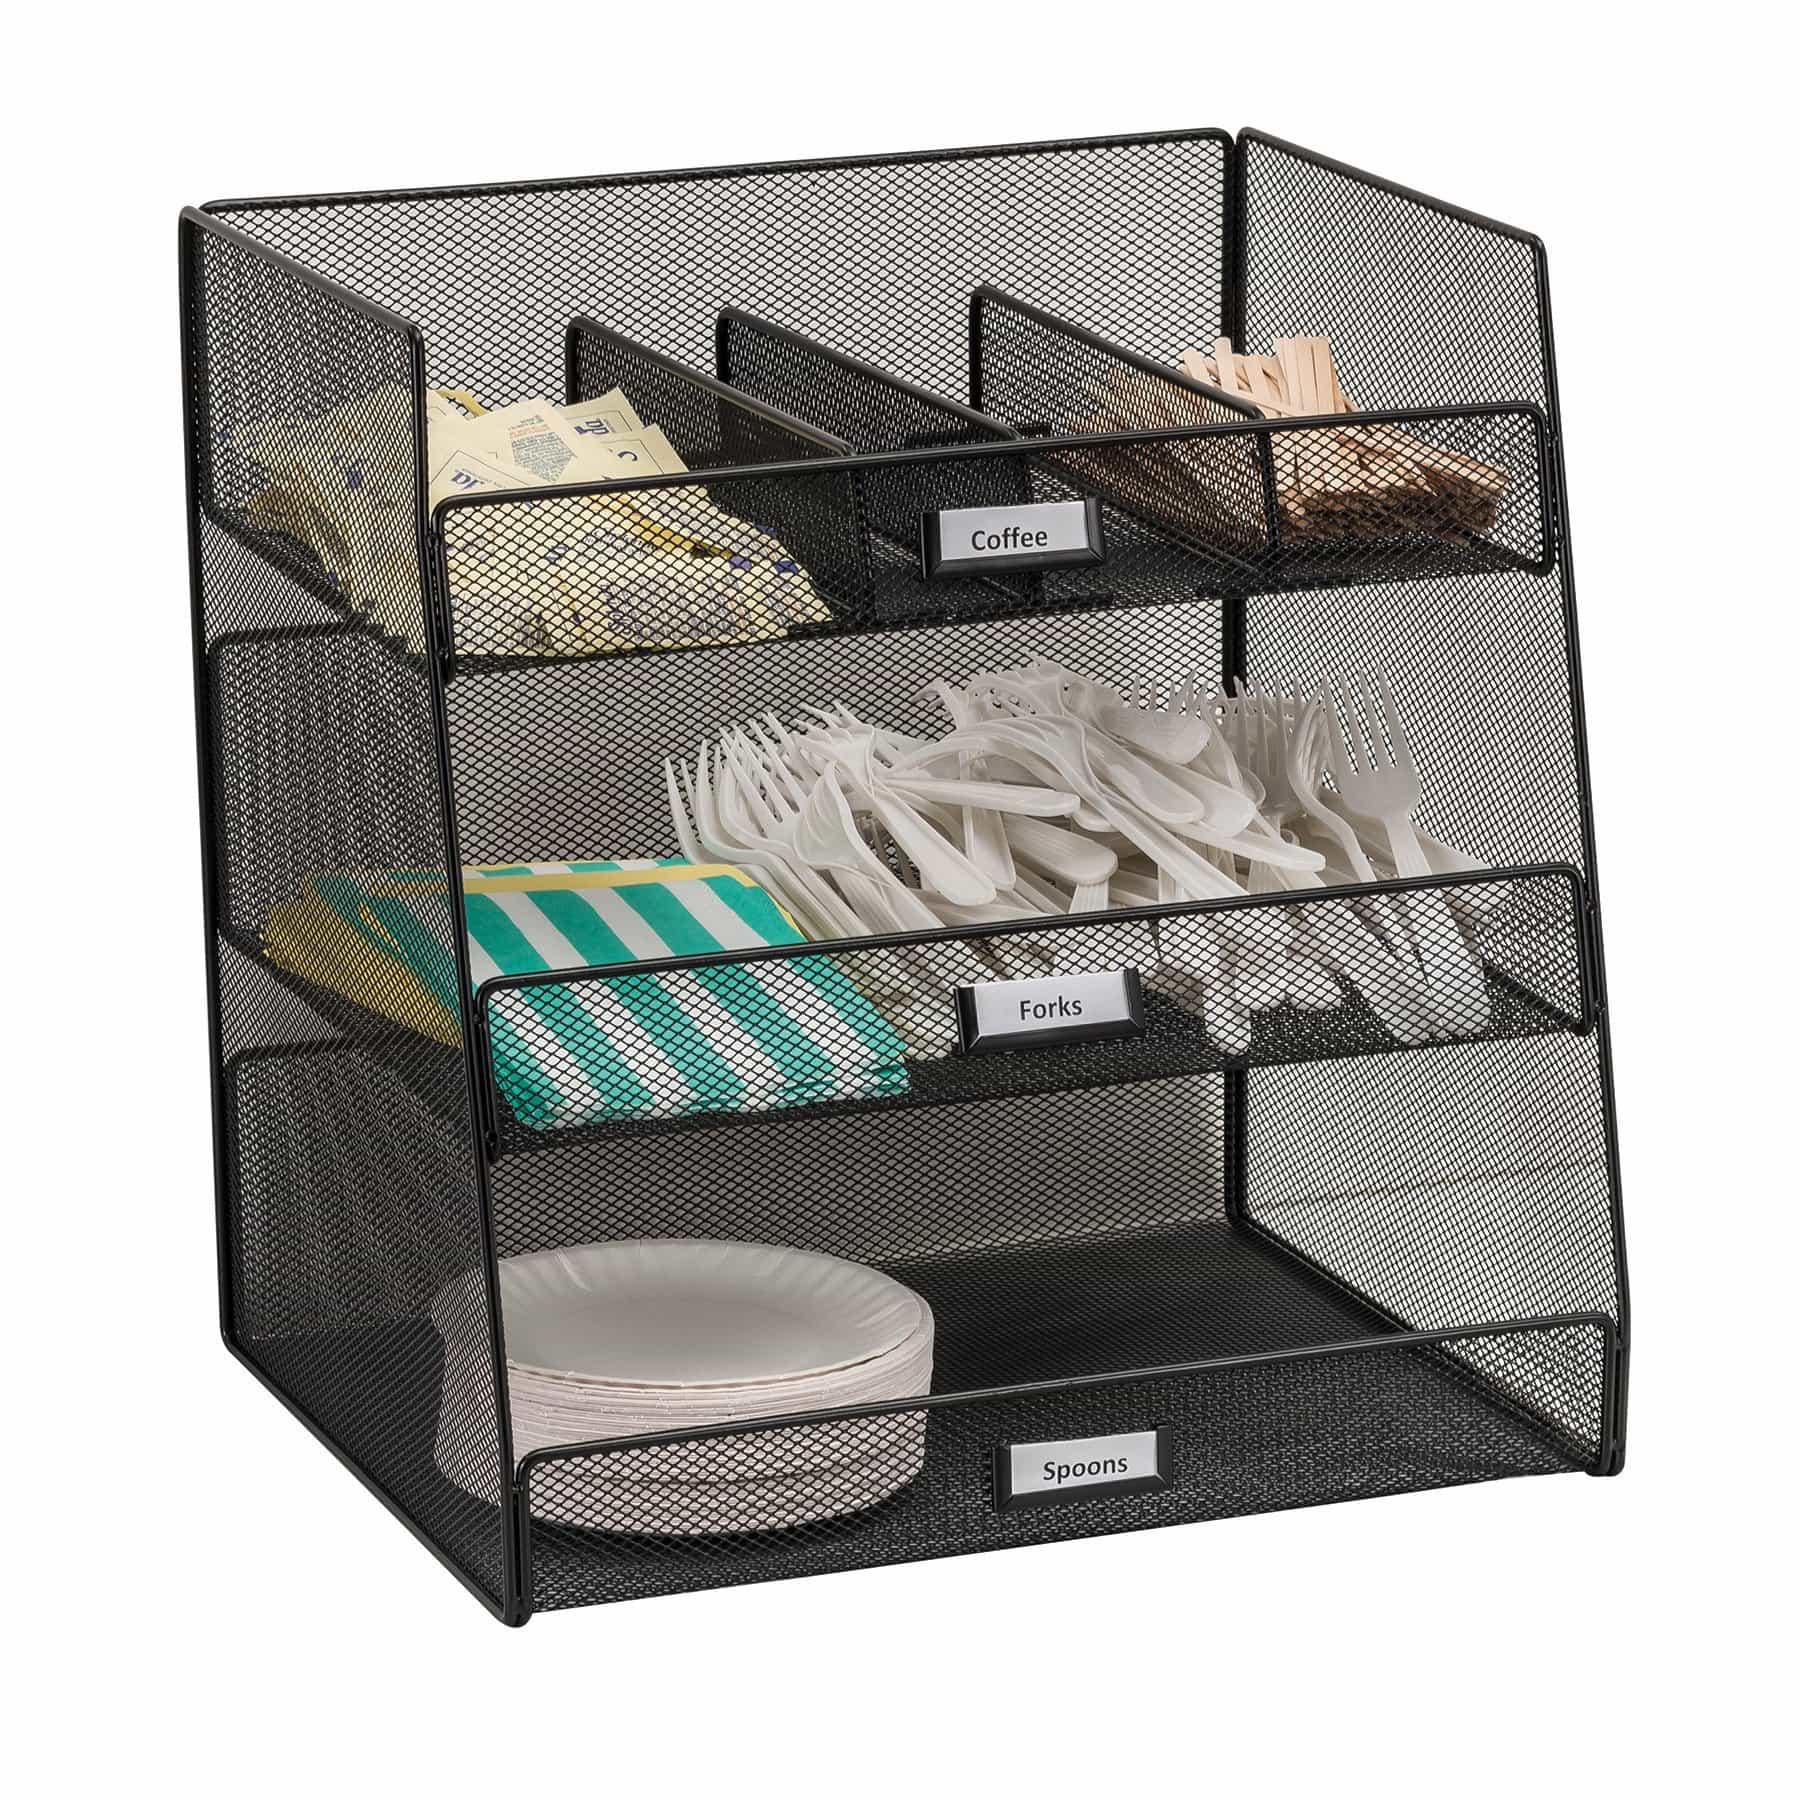 bedinhome - 3293BL Onyx Three large Compartments & Three Removable/Adjustable Dividers Break Room Black Organizer - Safco - Break Room Organizer